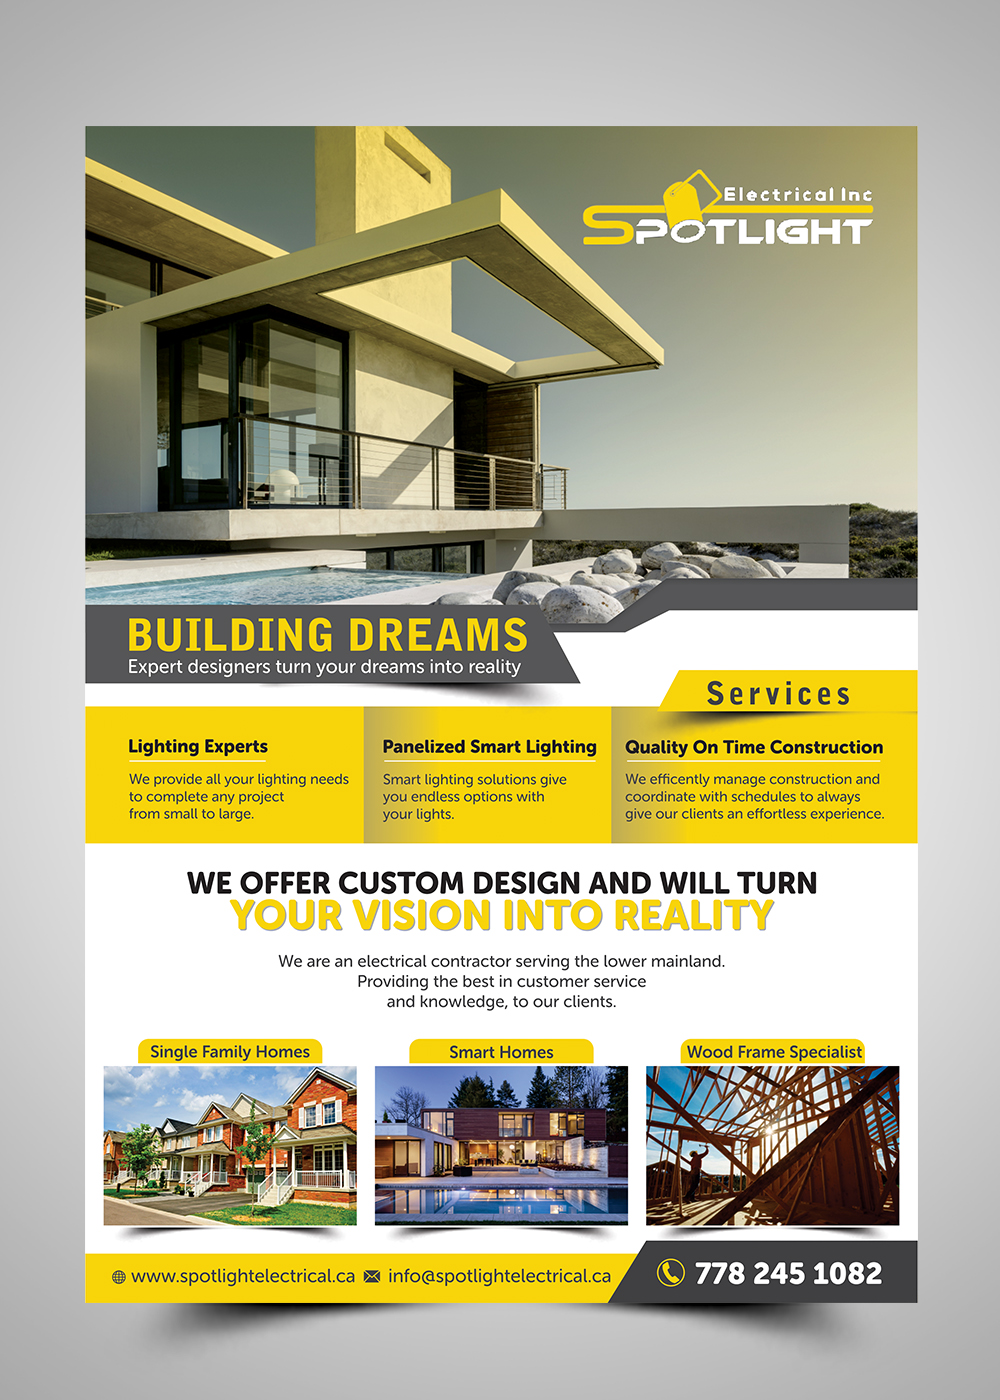 Flyer Design For Spotlight Electrical Inc. By ESolz Technologies